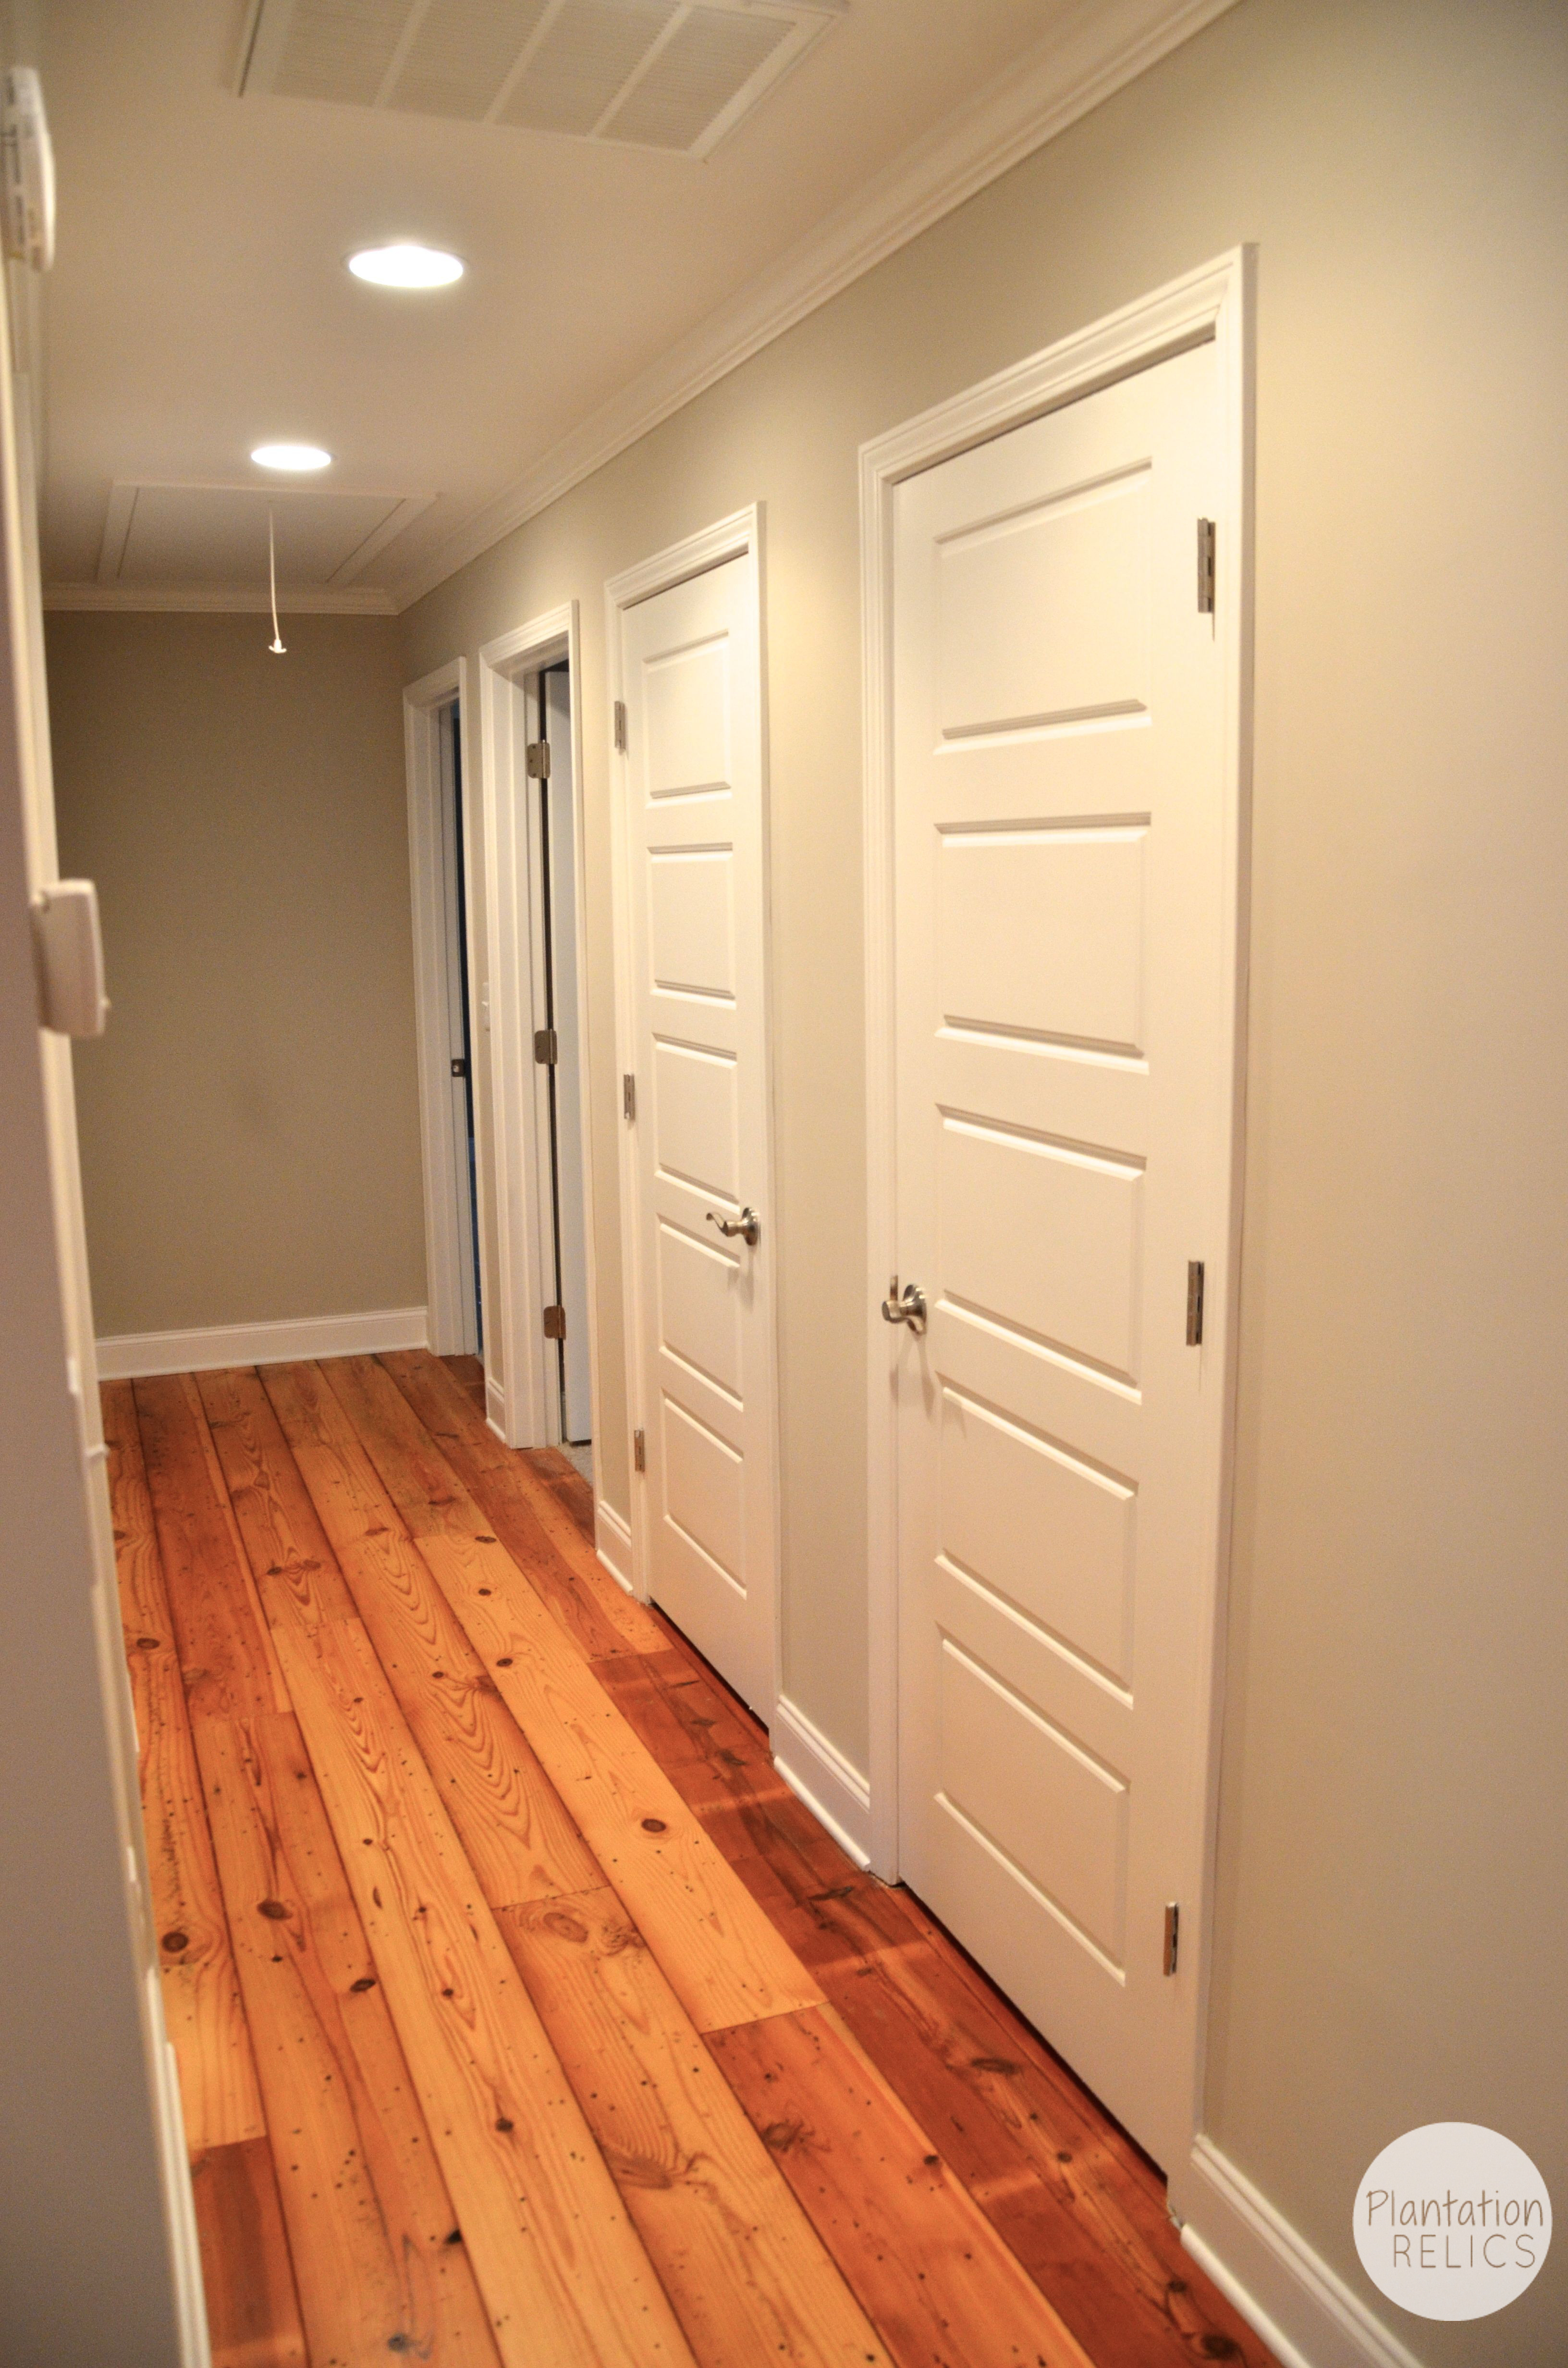 Flip #1 Bedrooms and Hallway–The Final AFTER of the Inside